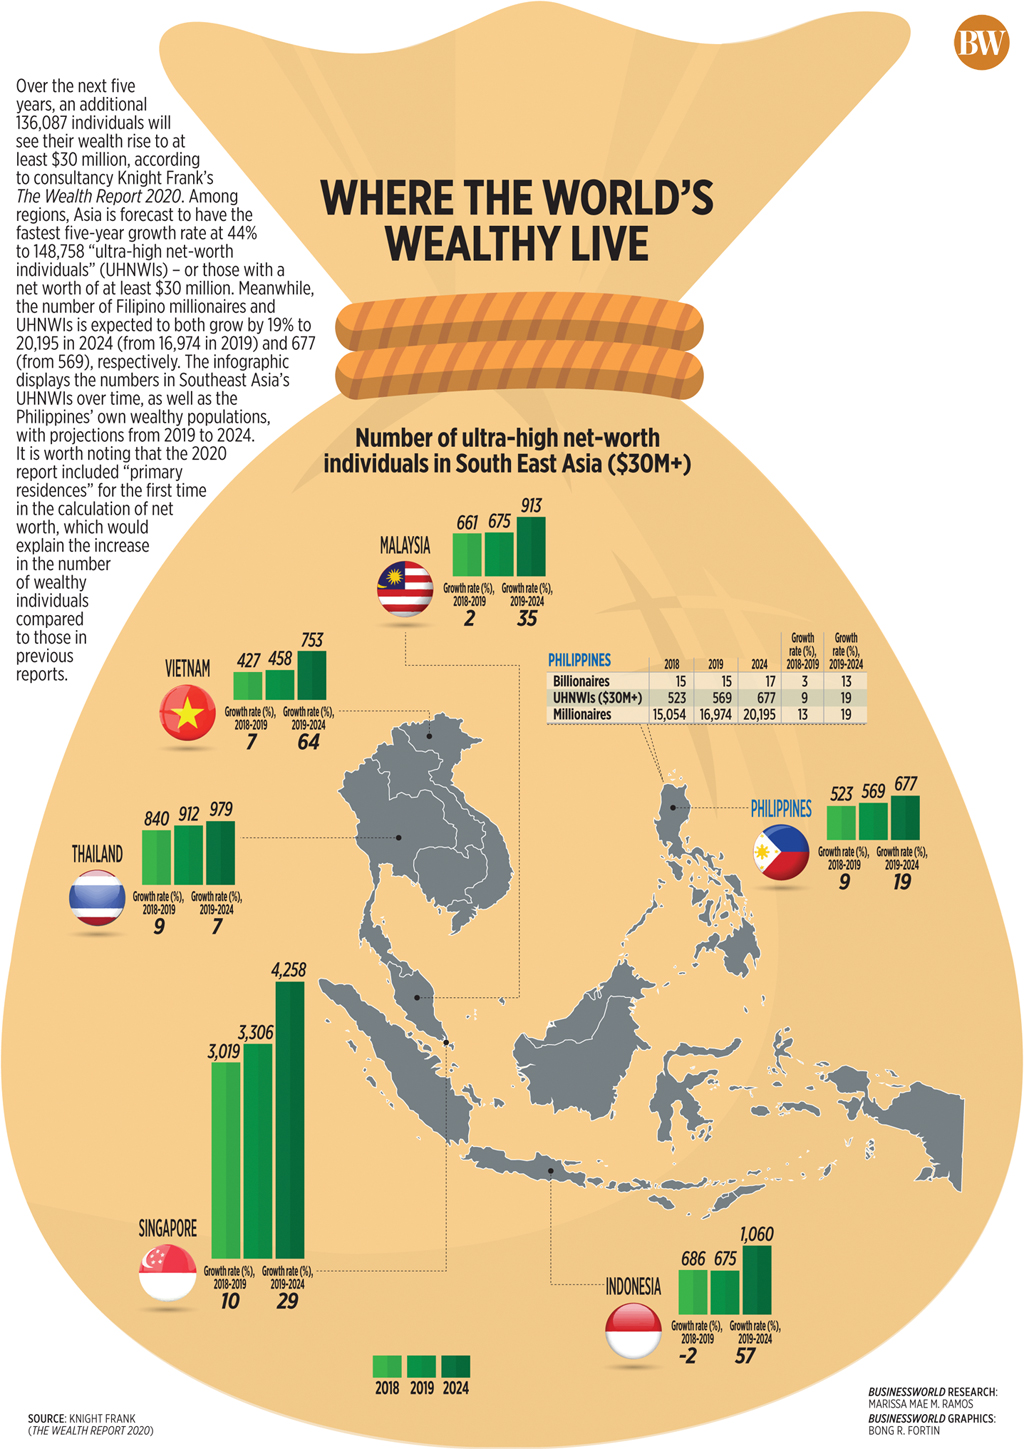 Where the world's wealthy live